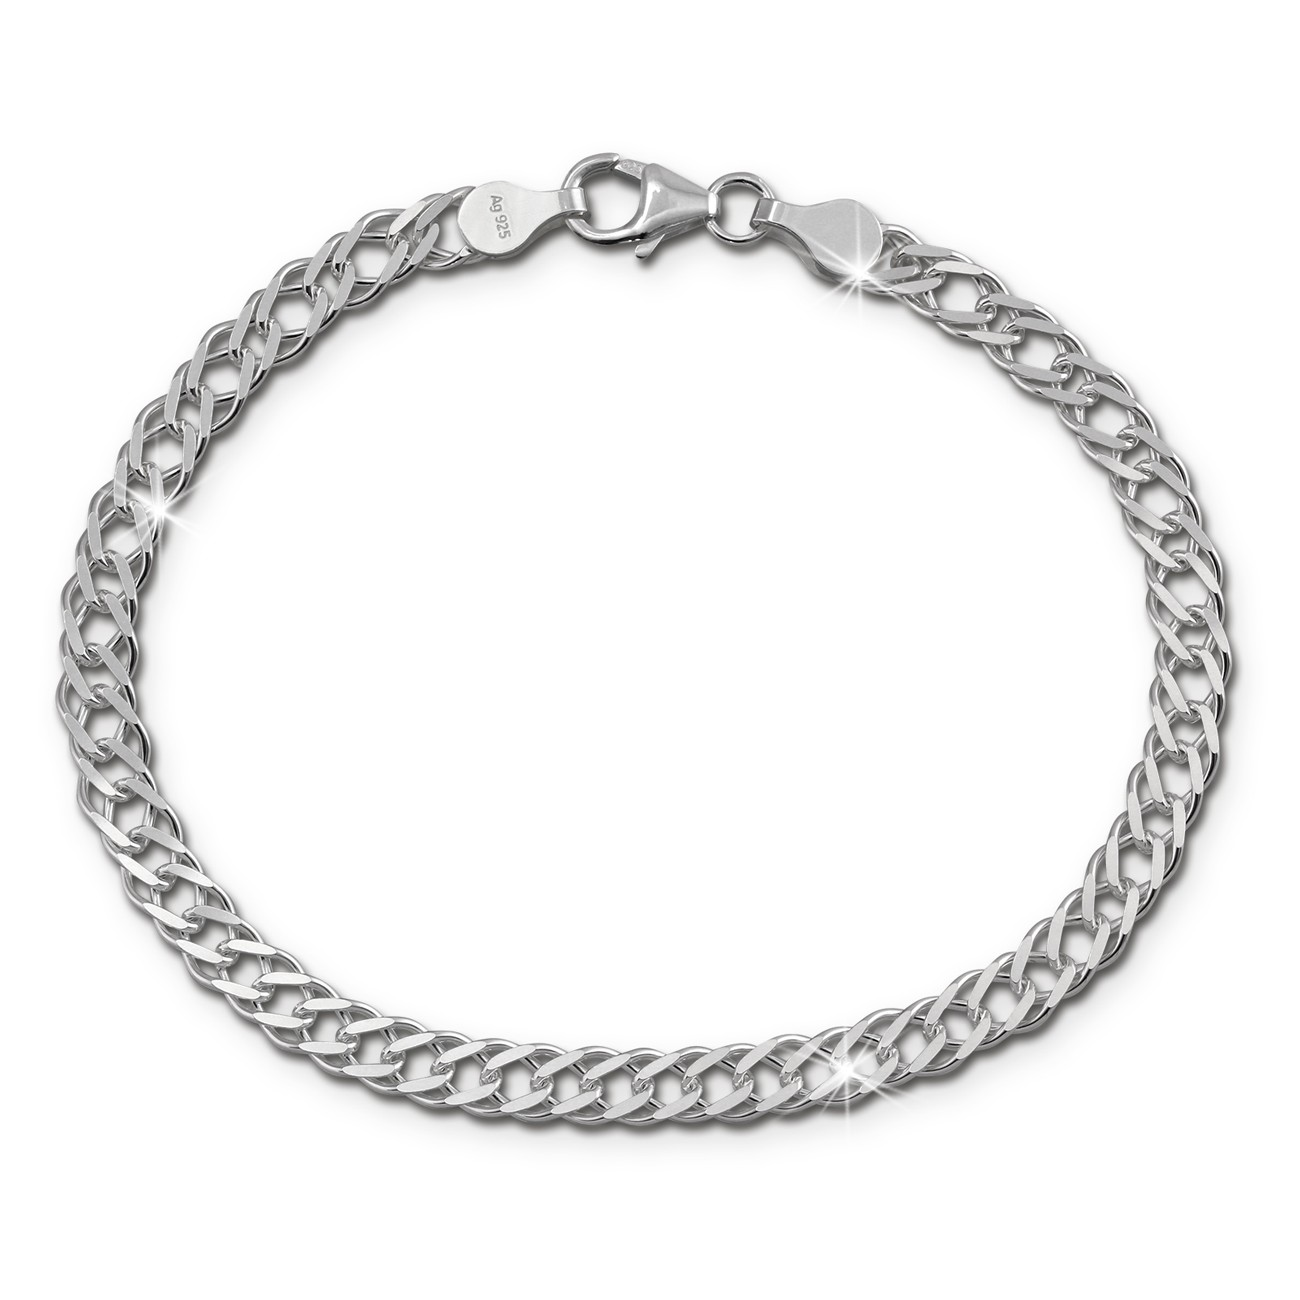 SilberDream Armband Zwillingspanzer 19cm 925 Sterling Silber Unisex SDA2519J